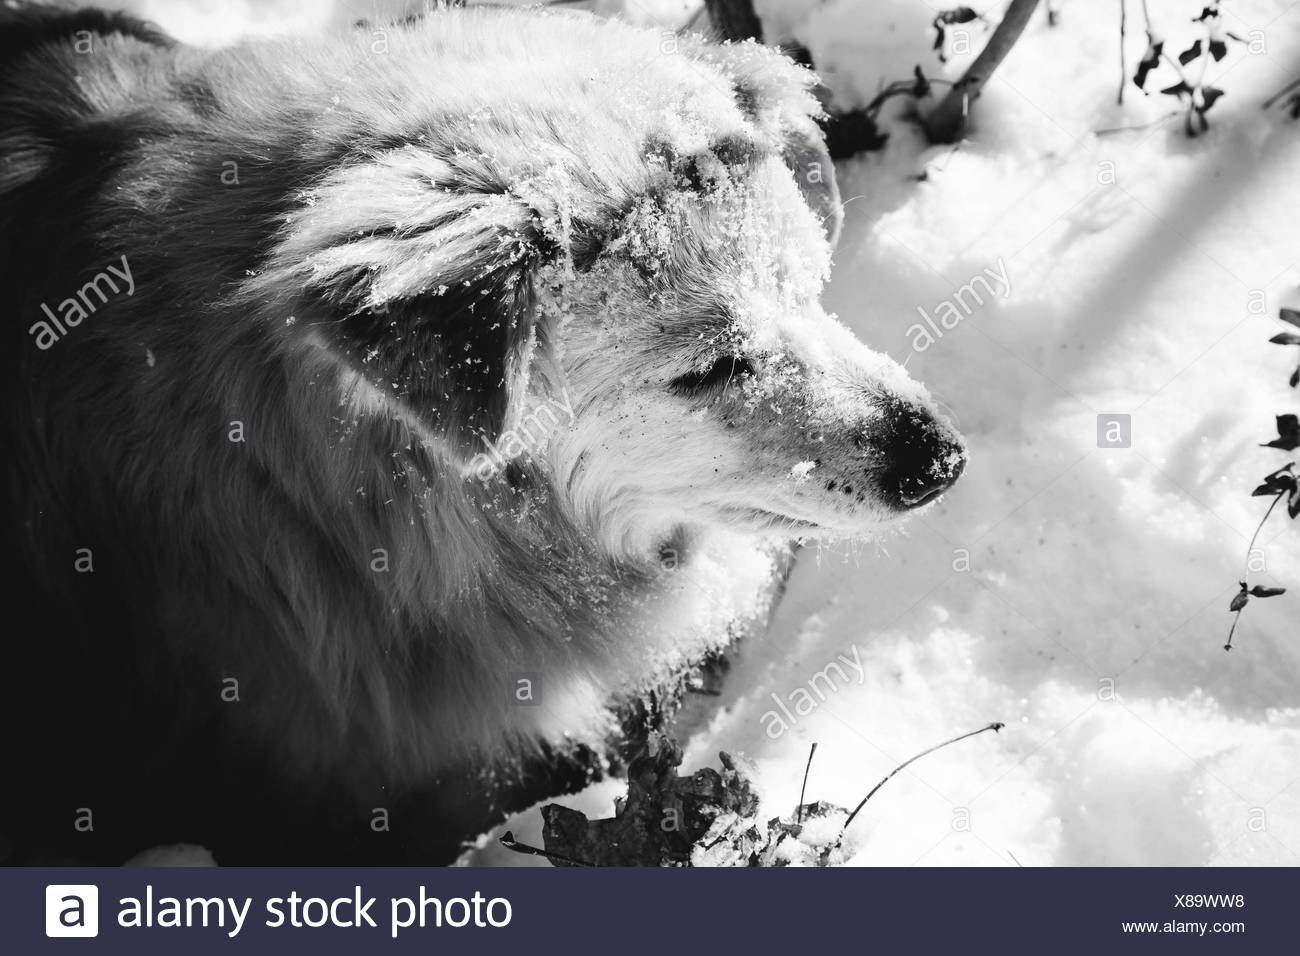 Close-Up Of Dog Standing On Snow Stock Photo